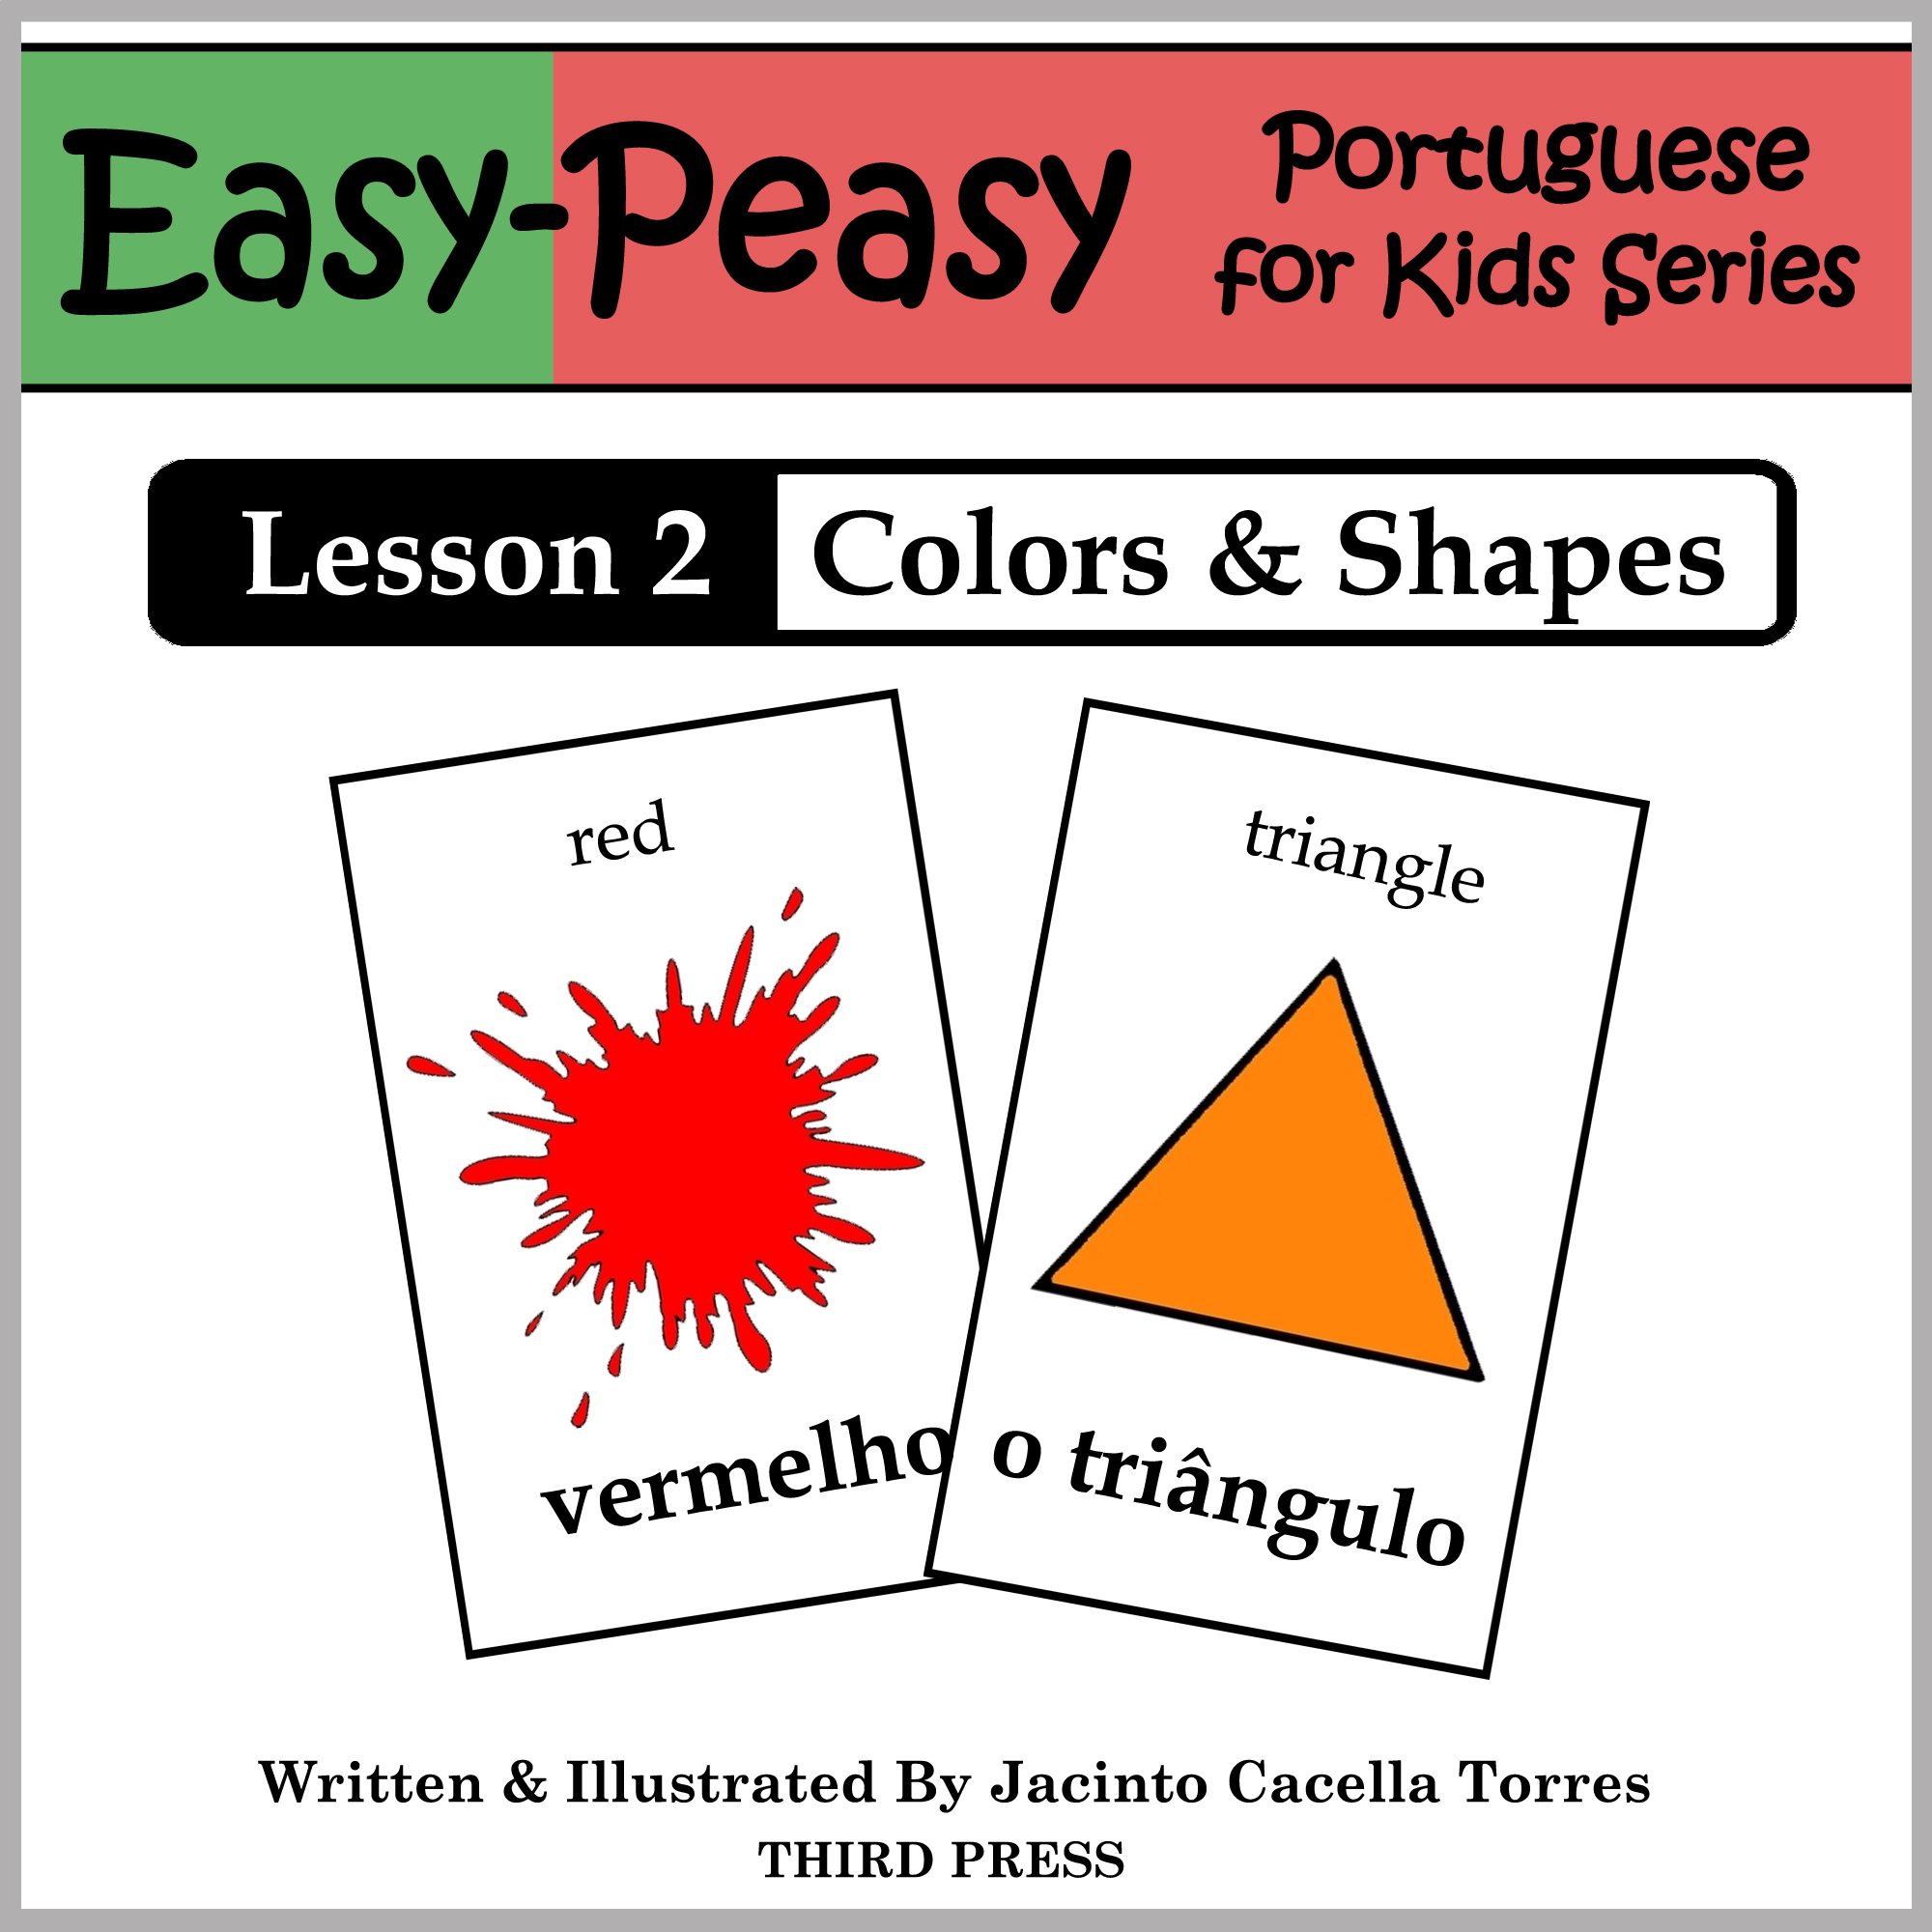 Portuguese Lesson 2: Colors & Shapes